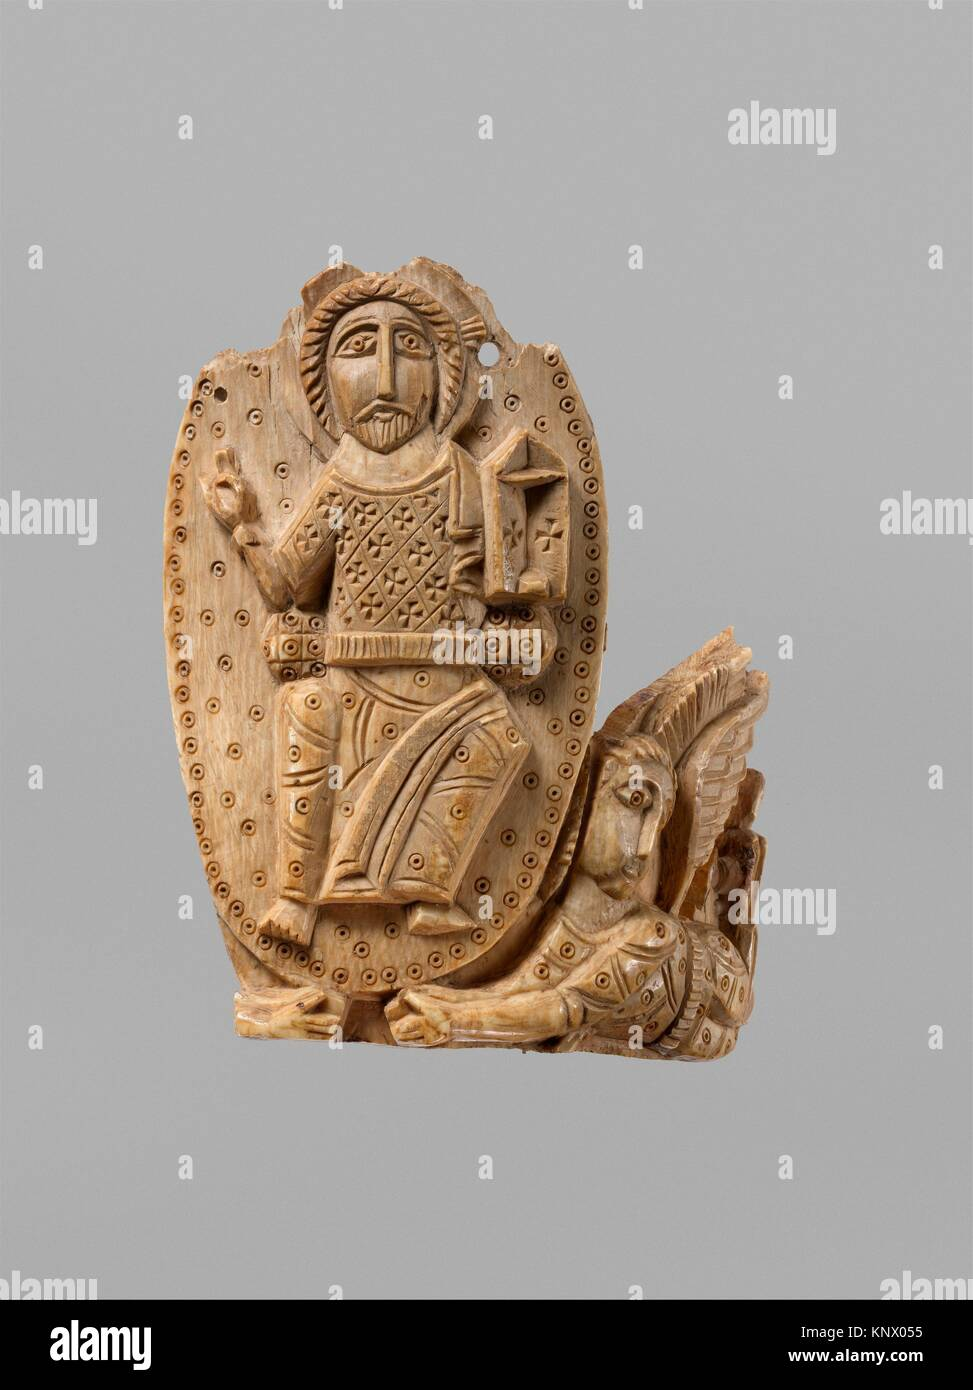 Tusk Fragment with Christ Enthroned. Object Name: Tusk fragment; Date: 810-1010; Geography: Attributed to Egypt; - Stock Image